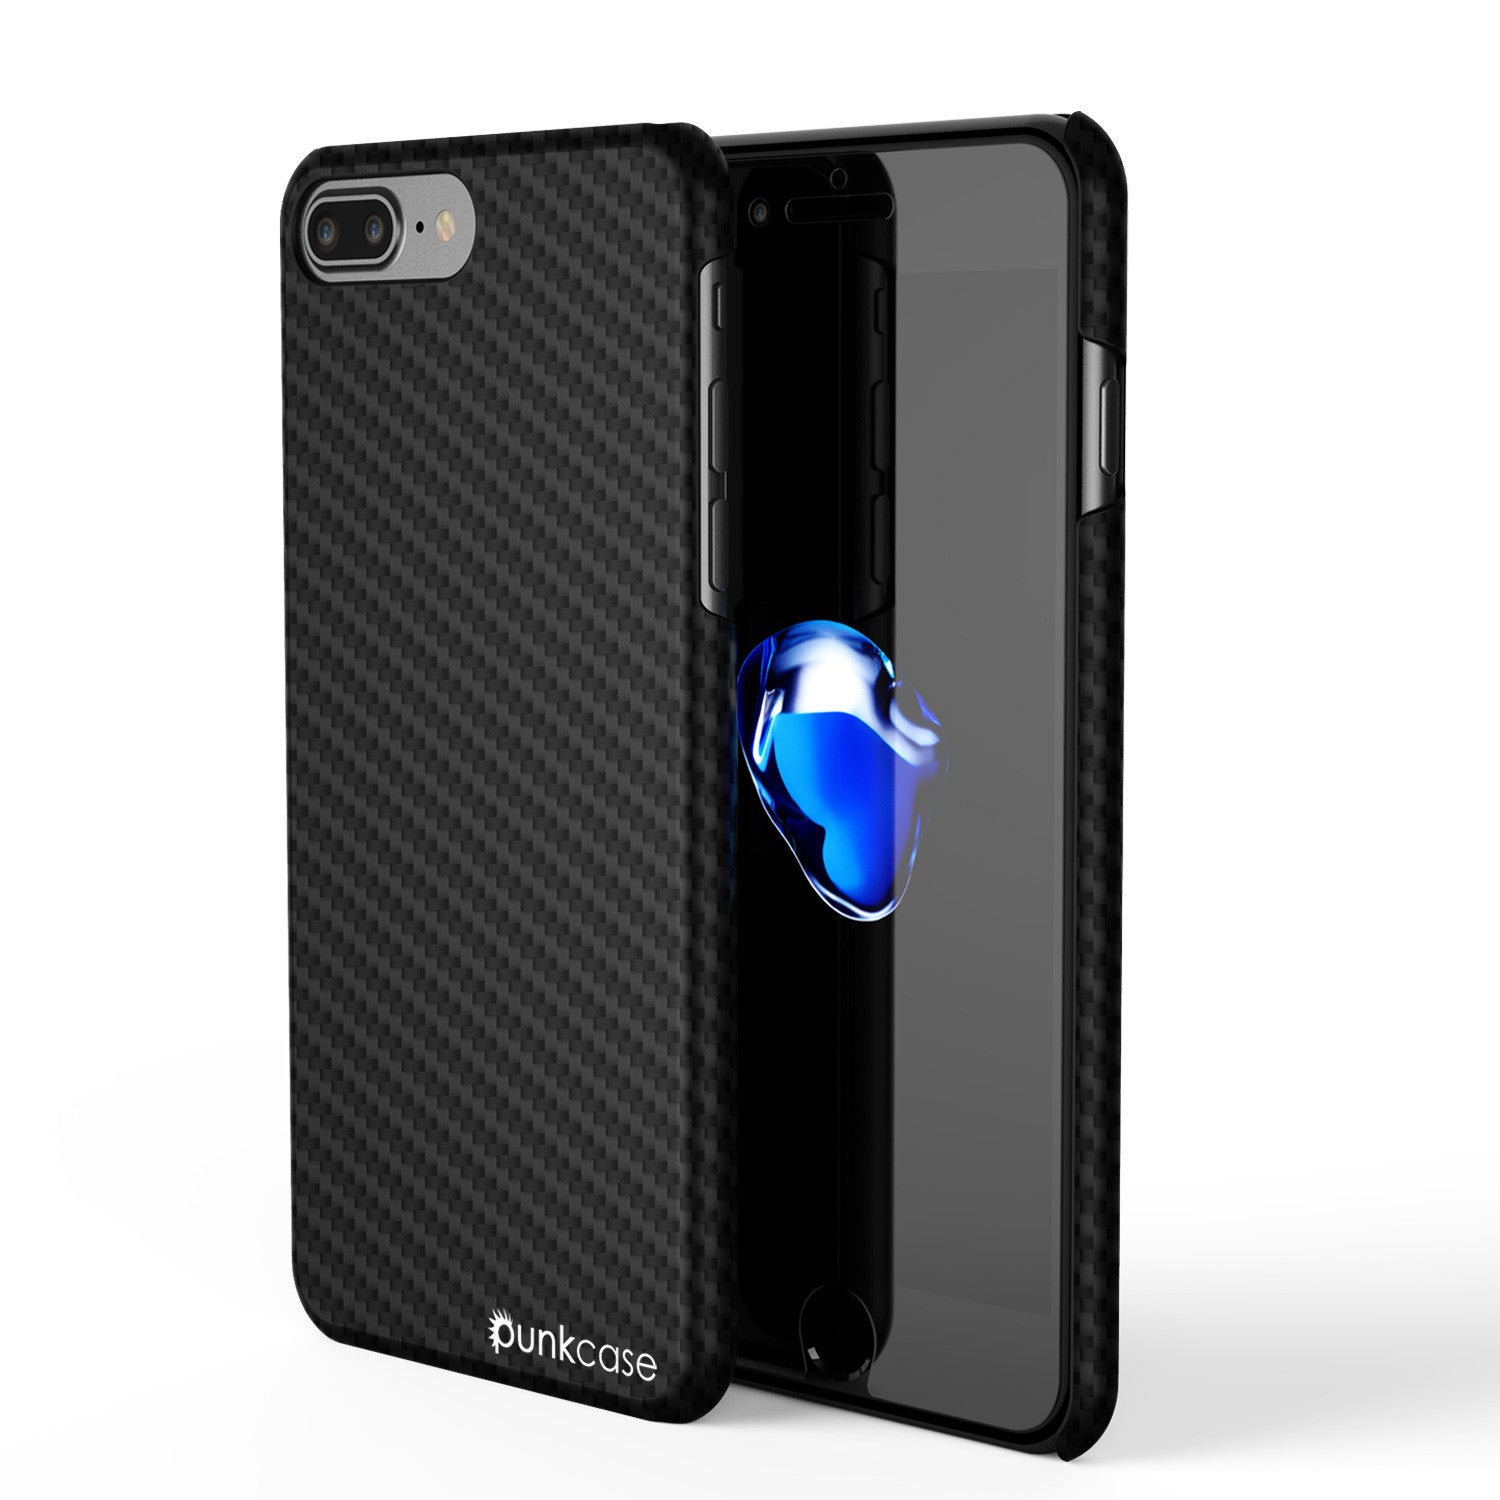 iPhone 7 Plus Case - Punkcase CarbonShield Jet Black